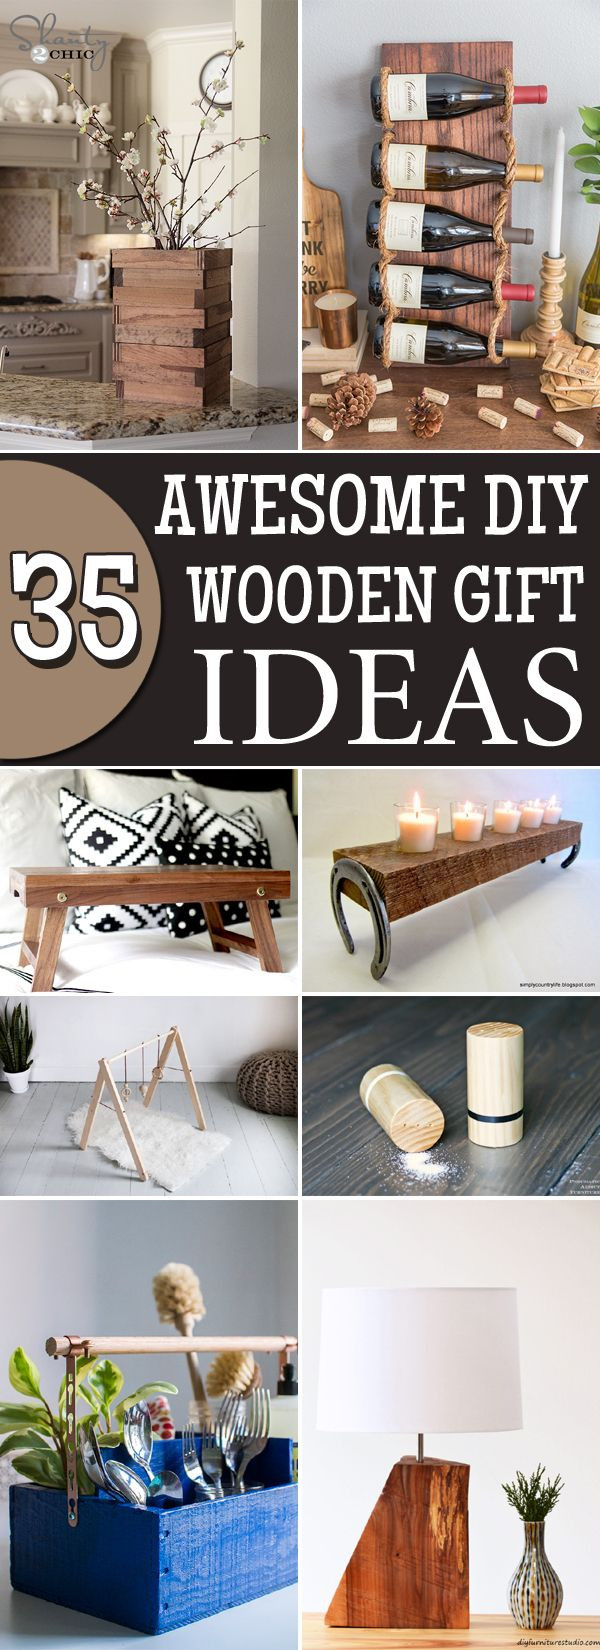 Best ideas about Wooden Gift Ideas . Save or Pin 35 Awesome DIY Wooden Gift Ideas That Everyone Will Love Now.